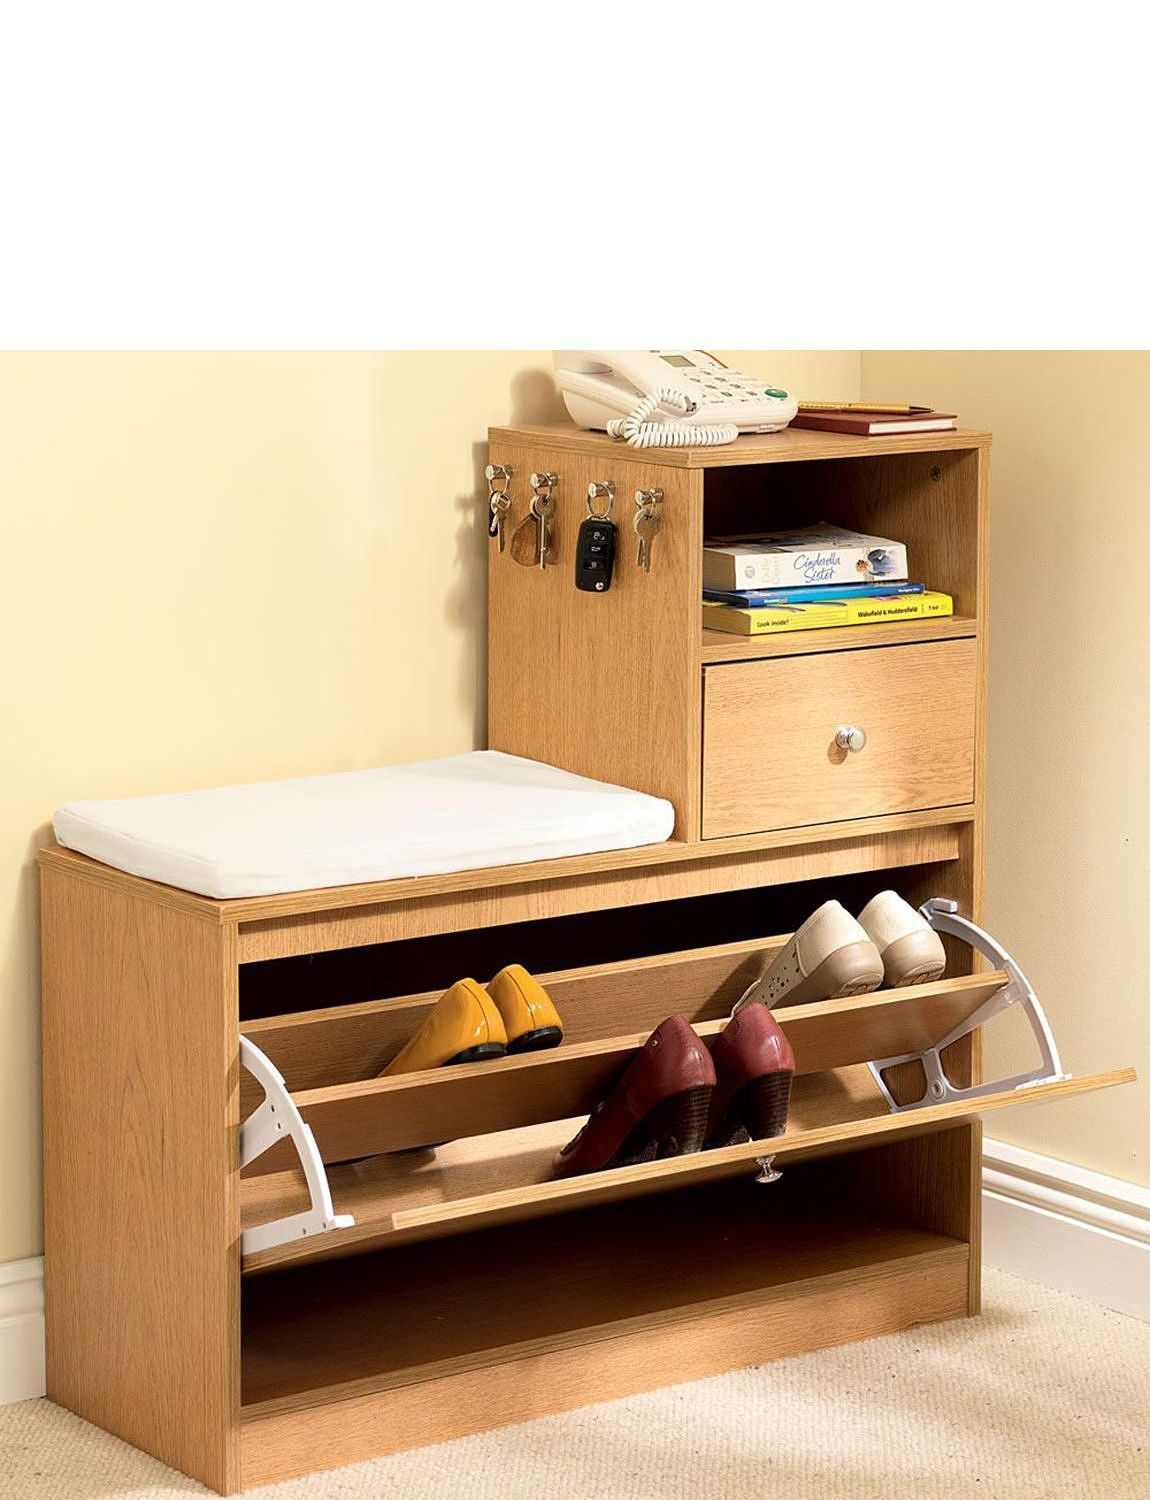 Hall Storage Bench With Shoe Store Telephone Table Home Furniture